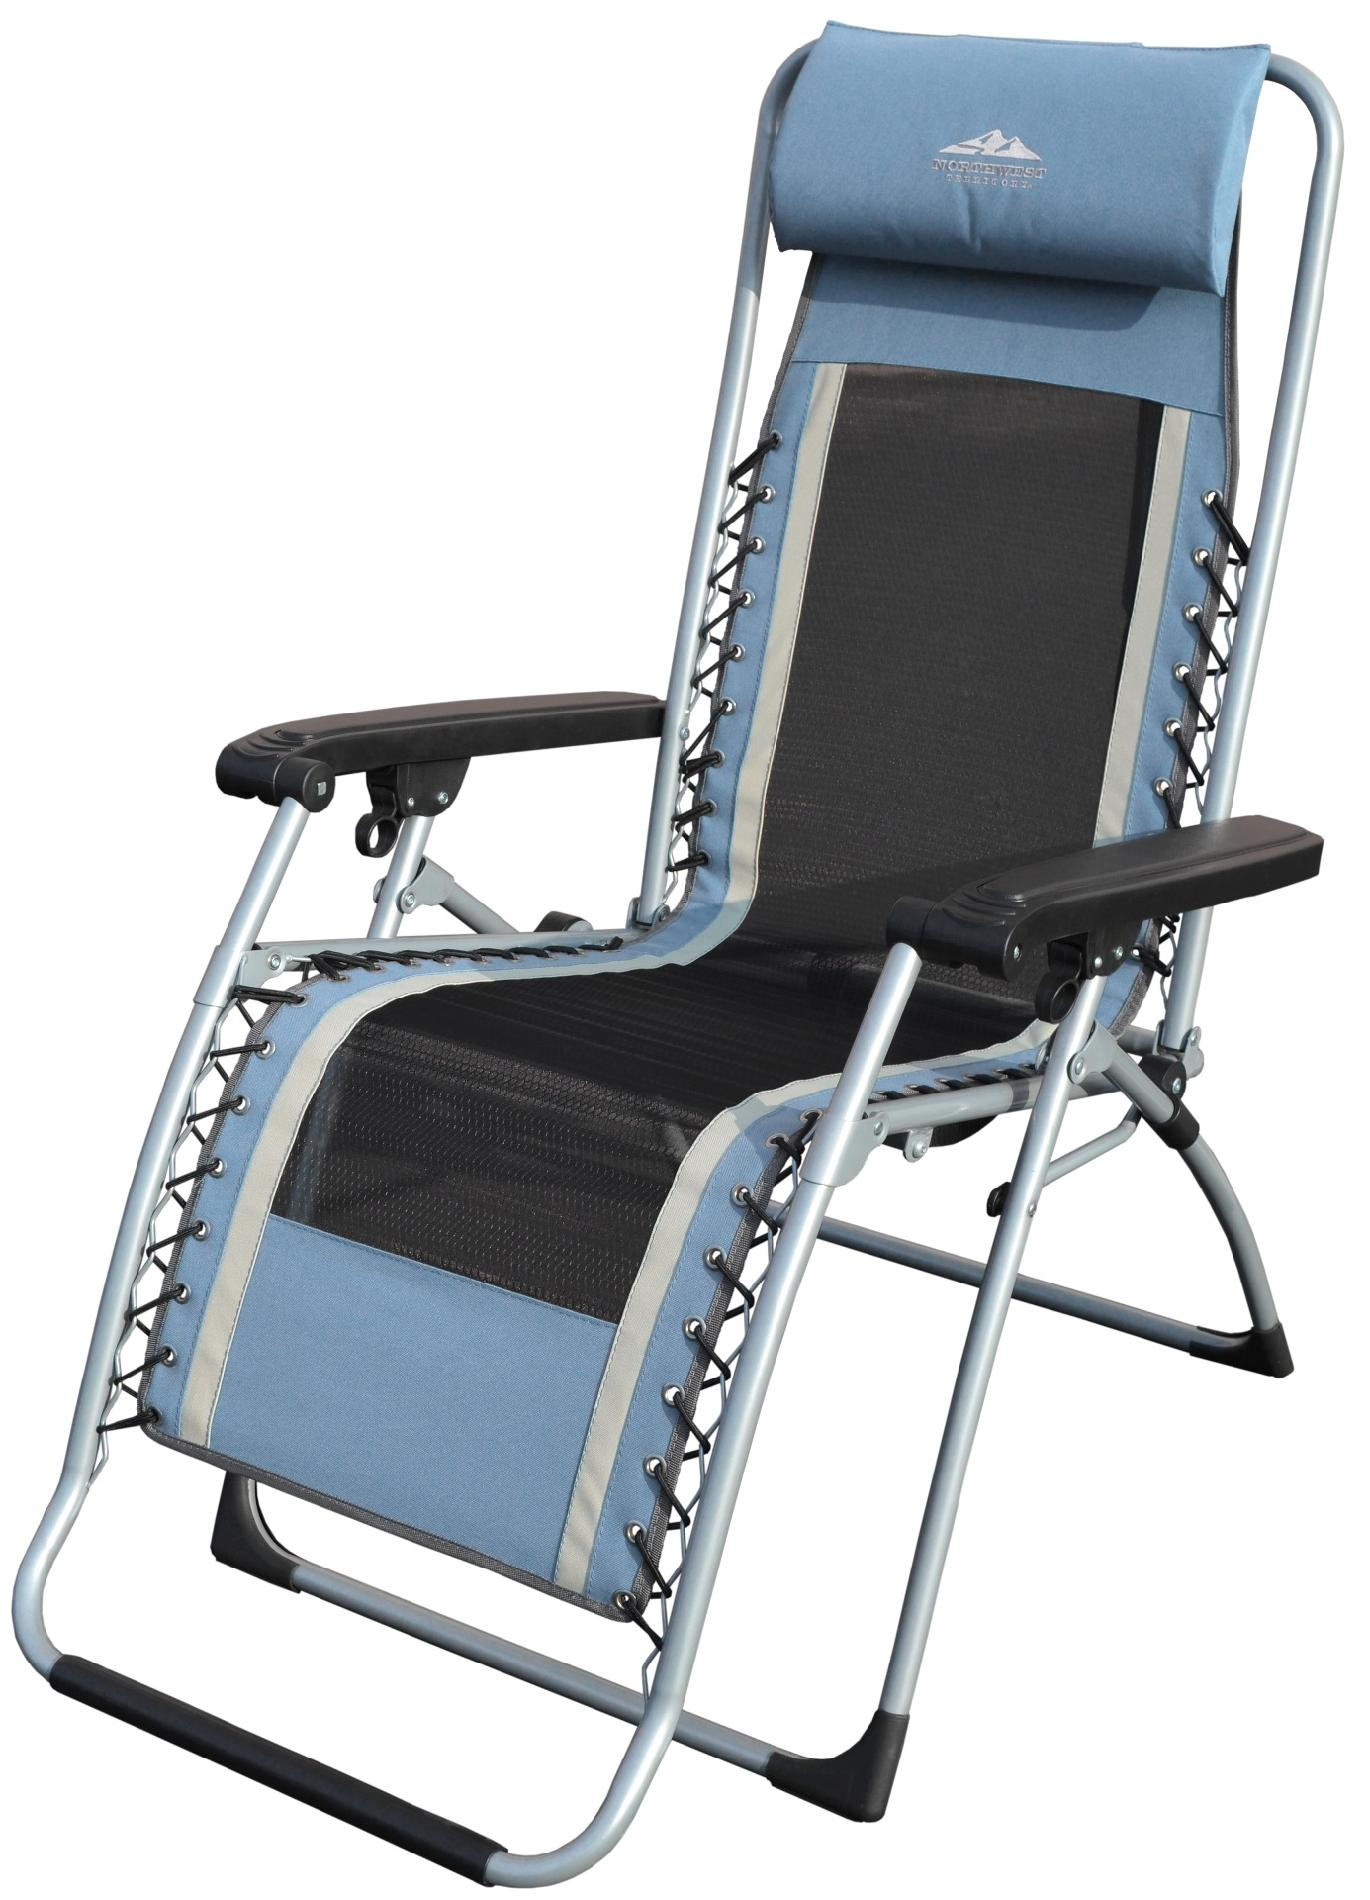 sonoma anti gravity chair review metallic silver spandex covers northwest territory suspension lounger sears